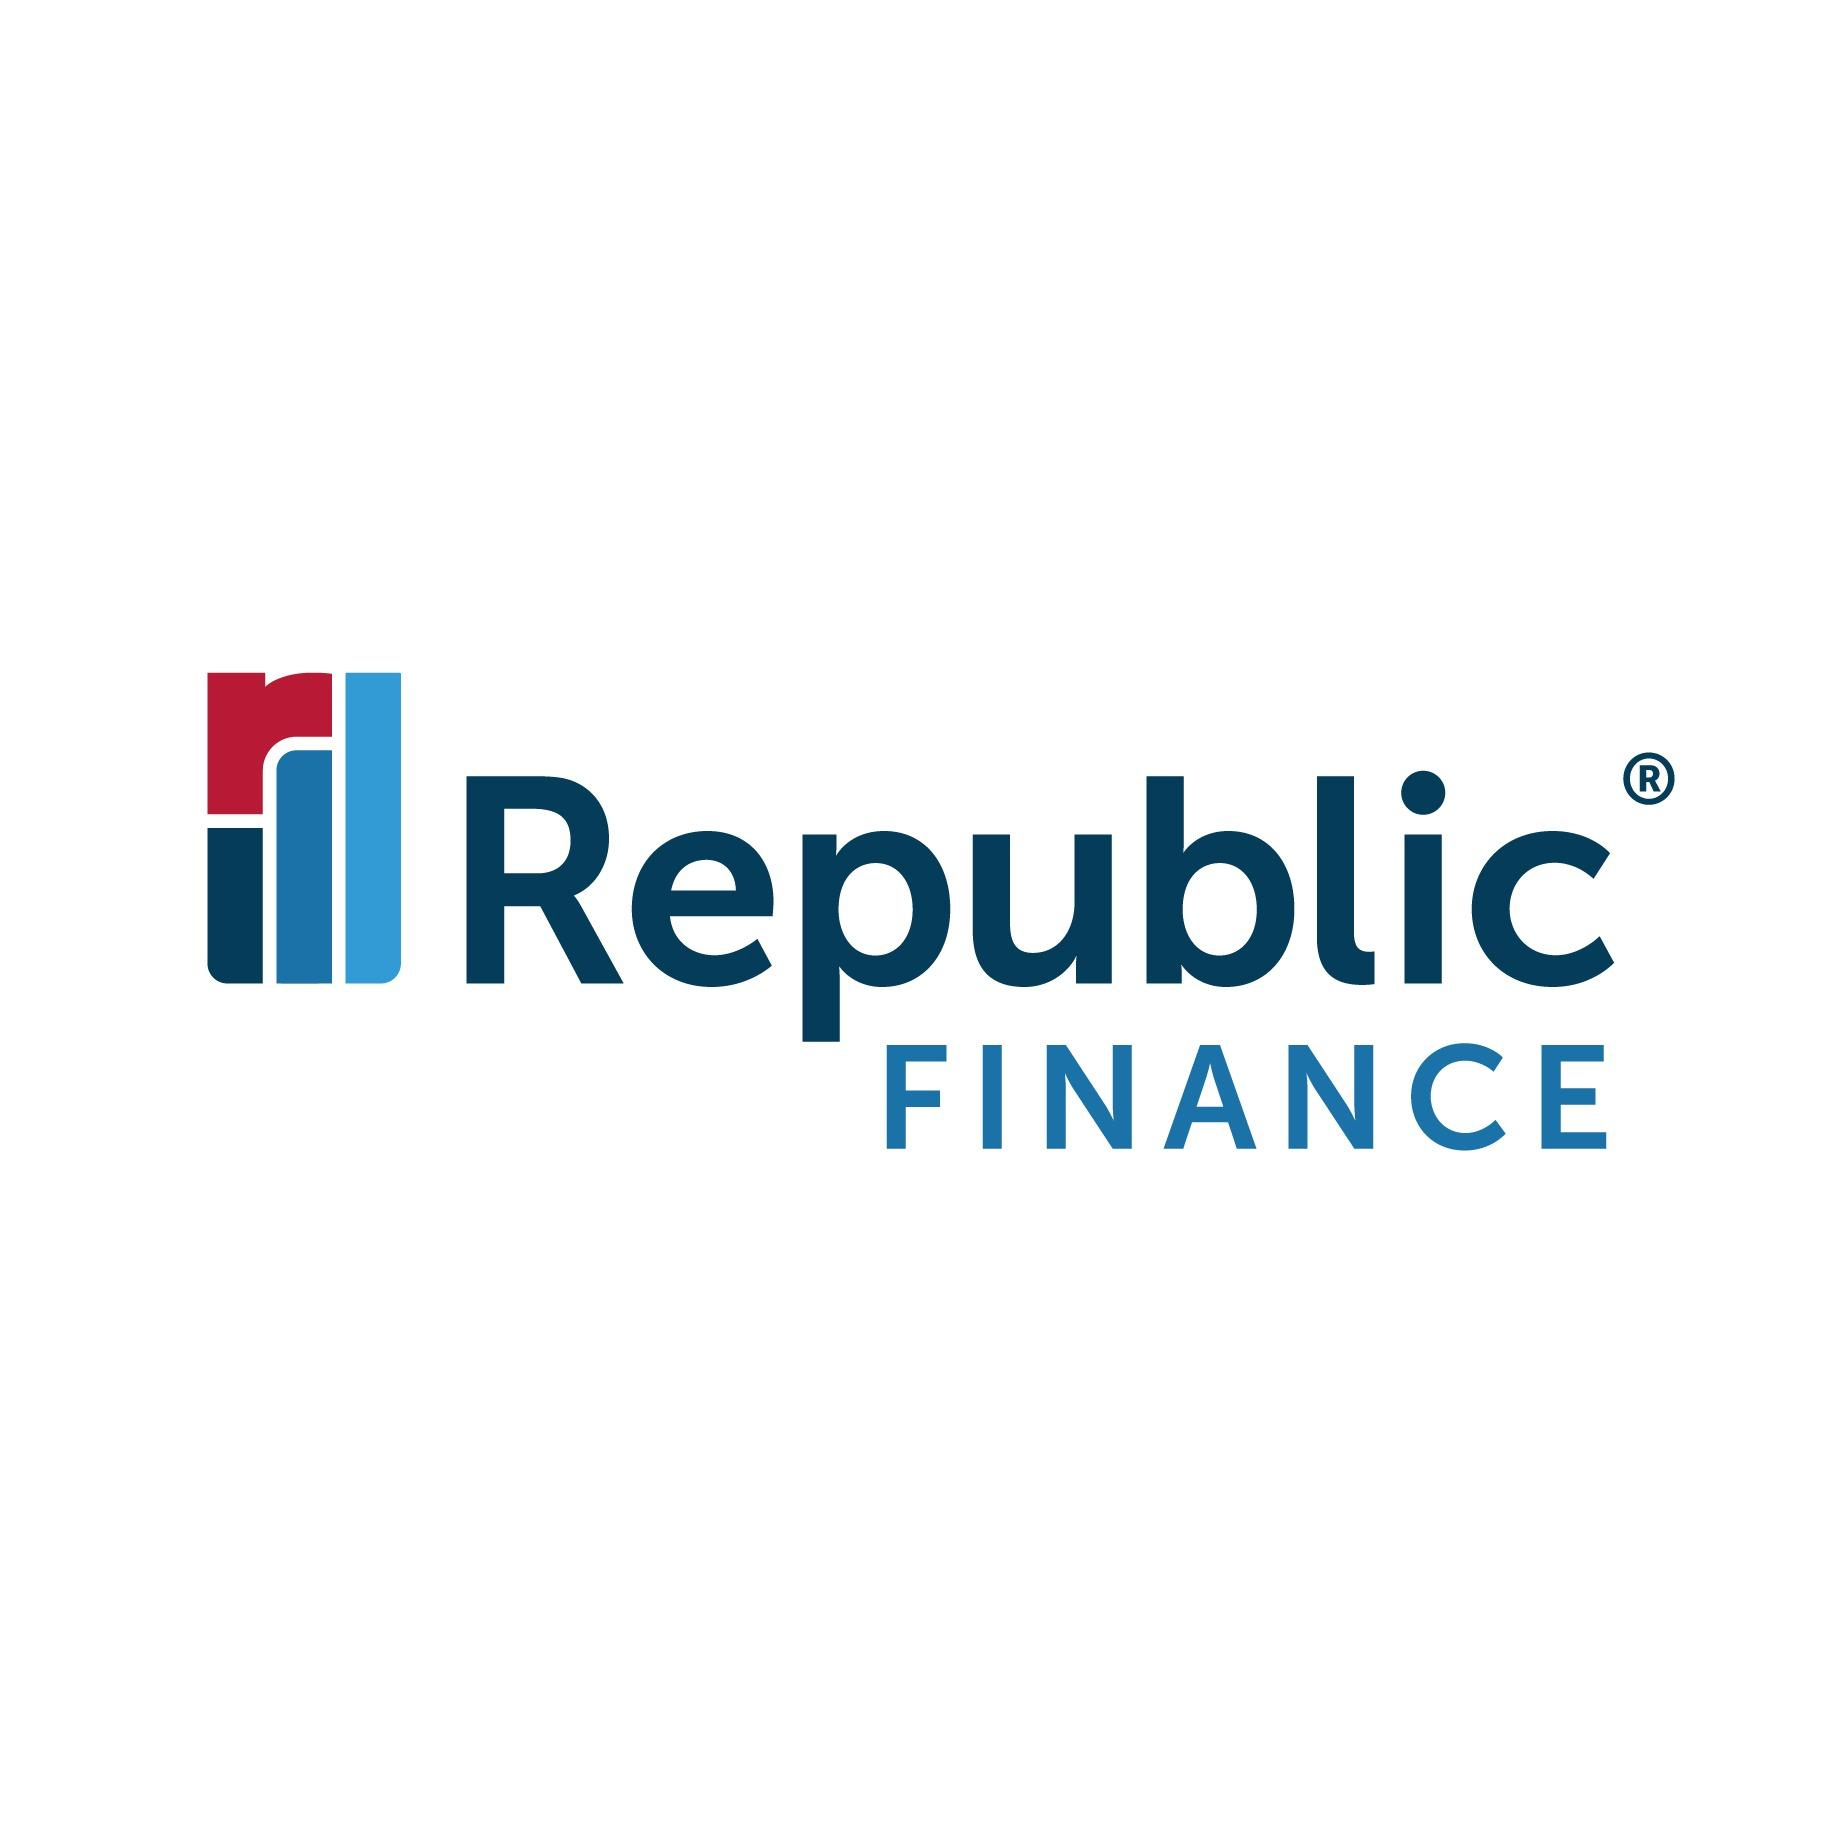 Republic Finance - Humble, TX 77346 - (281)812-2620 | ShowMeLocal.com